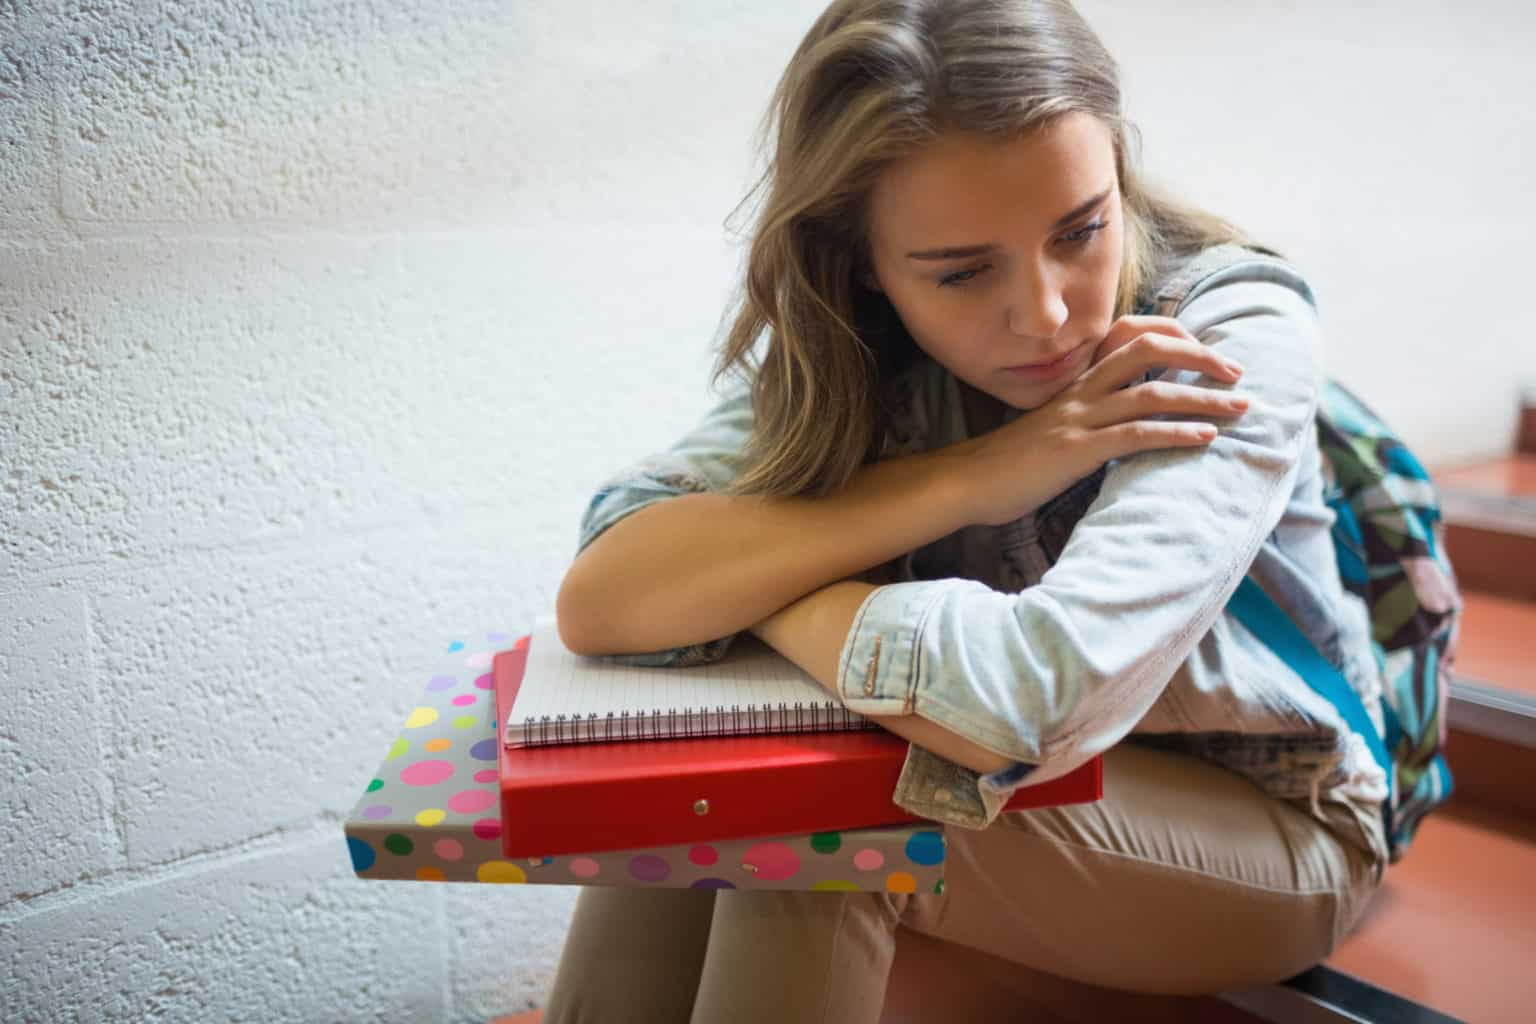 sad student sitting on stairs with textbooks in lap